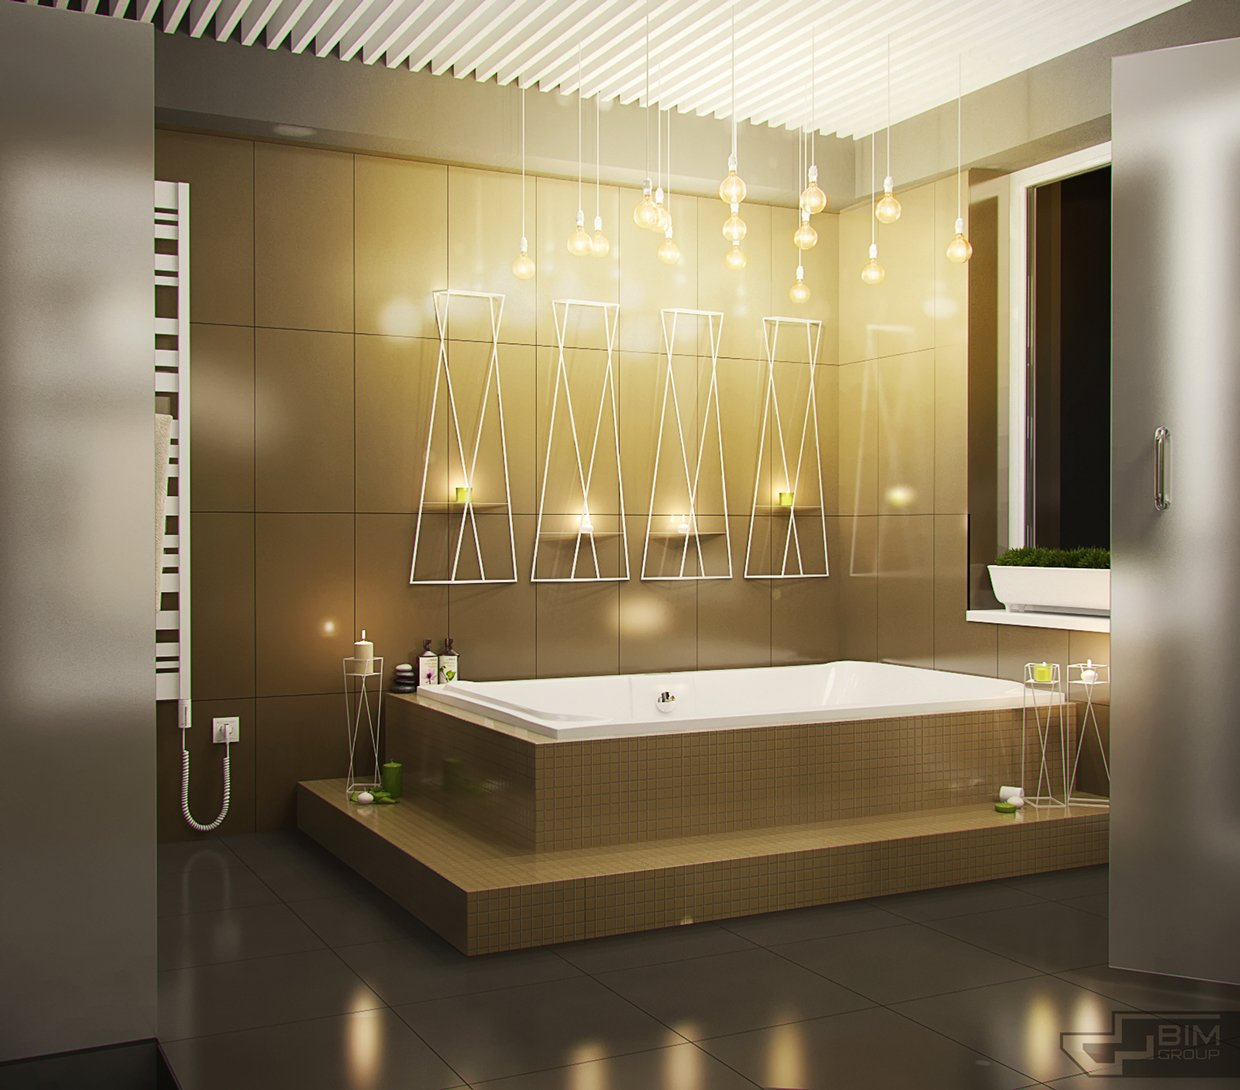 Decorating Bathroom Backsplash Ideas Showing A Modern And Luxury Design Which Is Suitable To